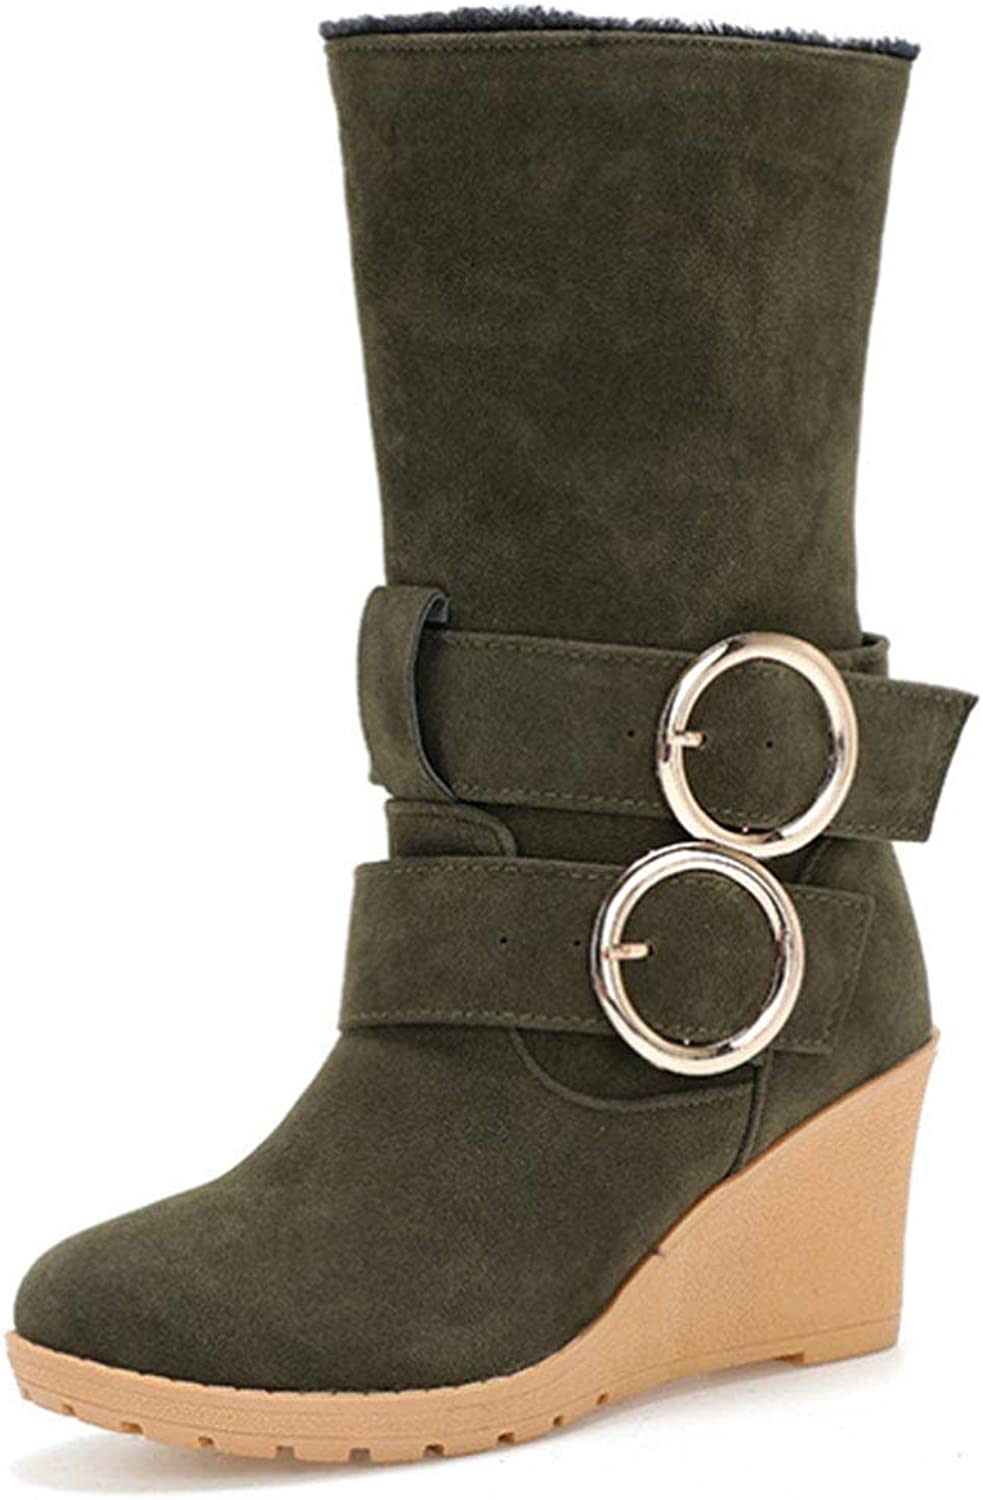 Women's Snow Boots Suede in The Tube Wedge with high-Heeled Cotton shoes Thickened Plus Velvet Belt Buckle Decorative Cotton Boots